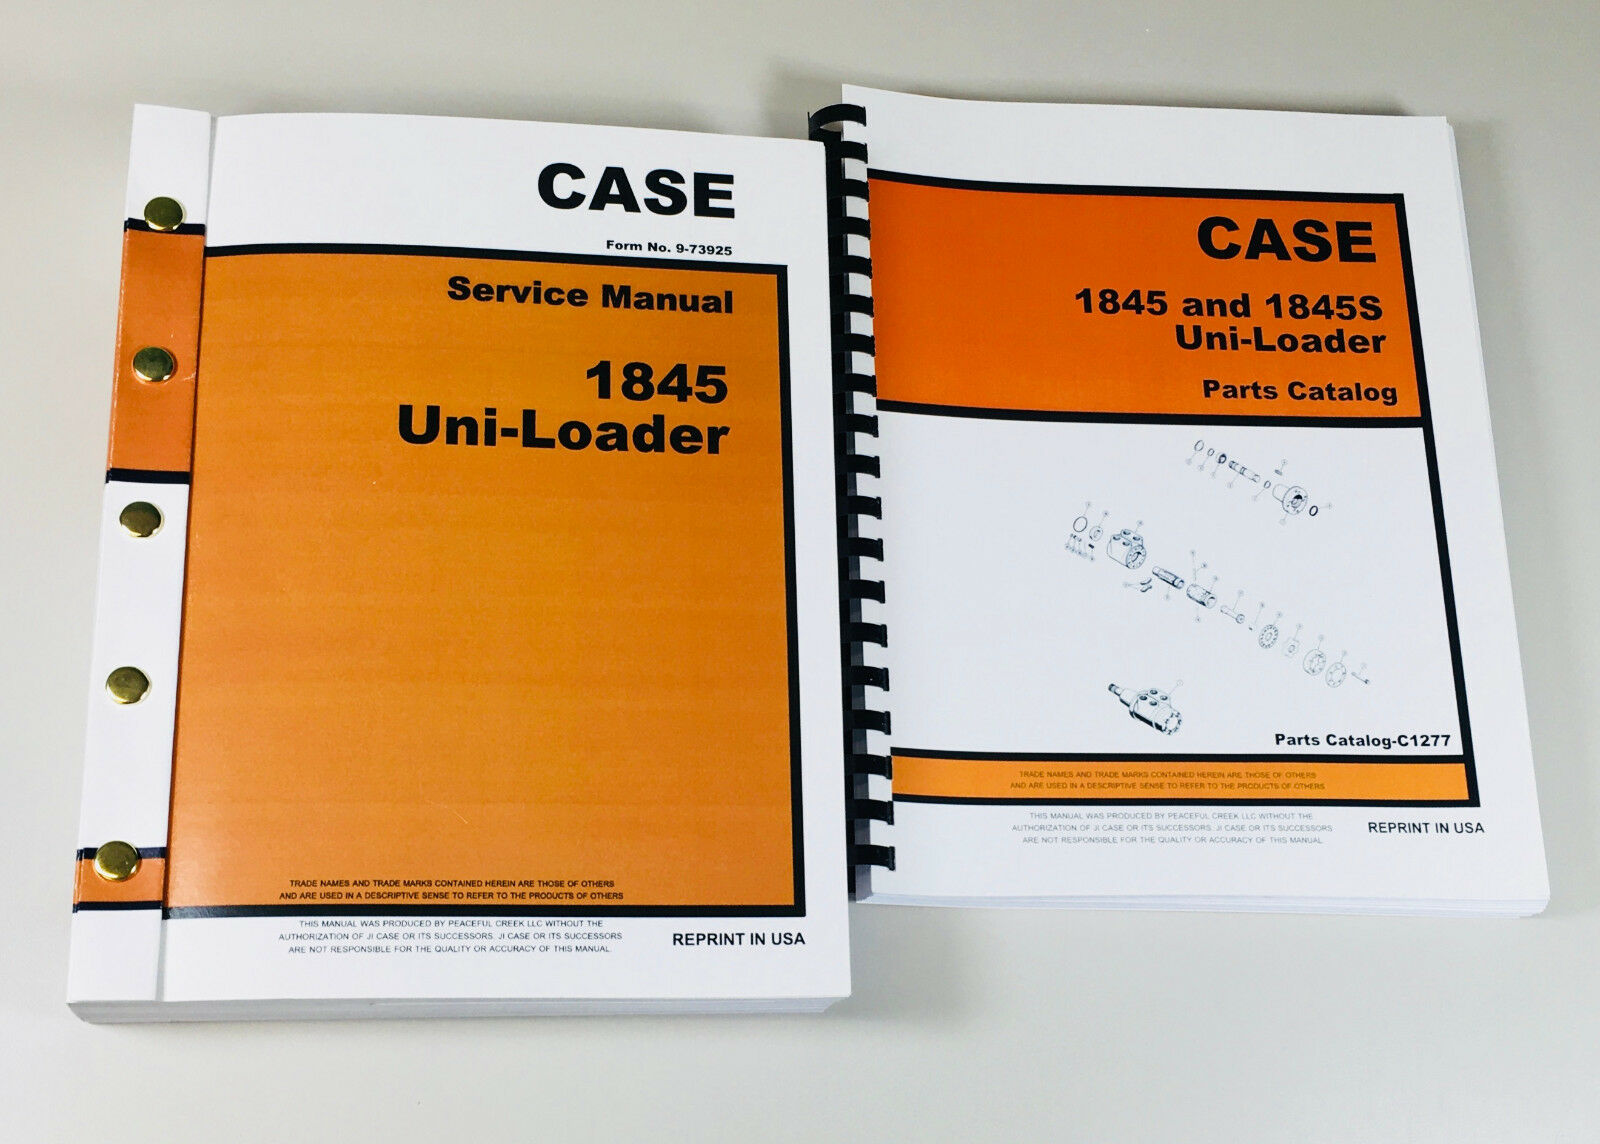 Fully Covers 1845 Uni-Loader Skid Steer All years & serials. Complete  Service/Overhaul/Parts Manuals. This comprehensive set of manuals include